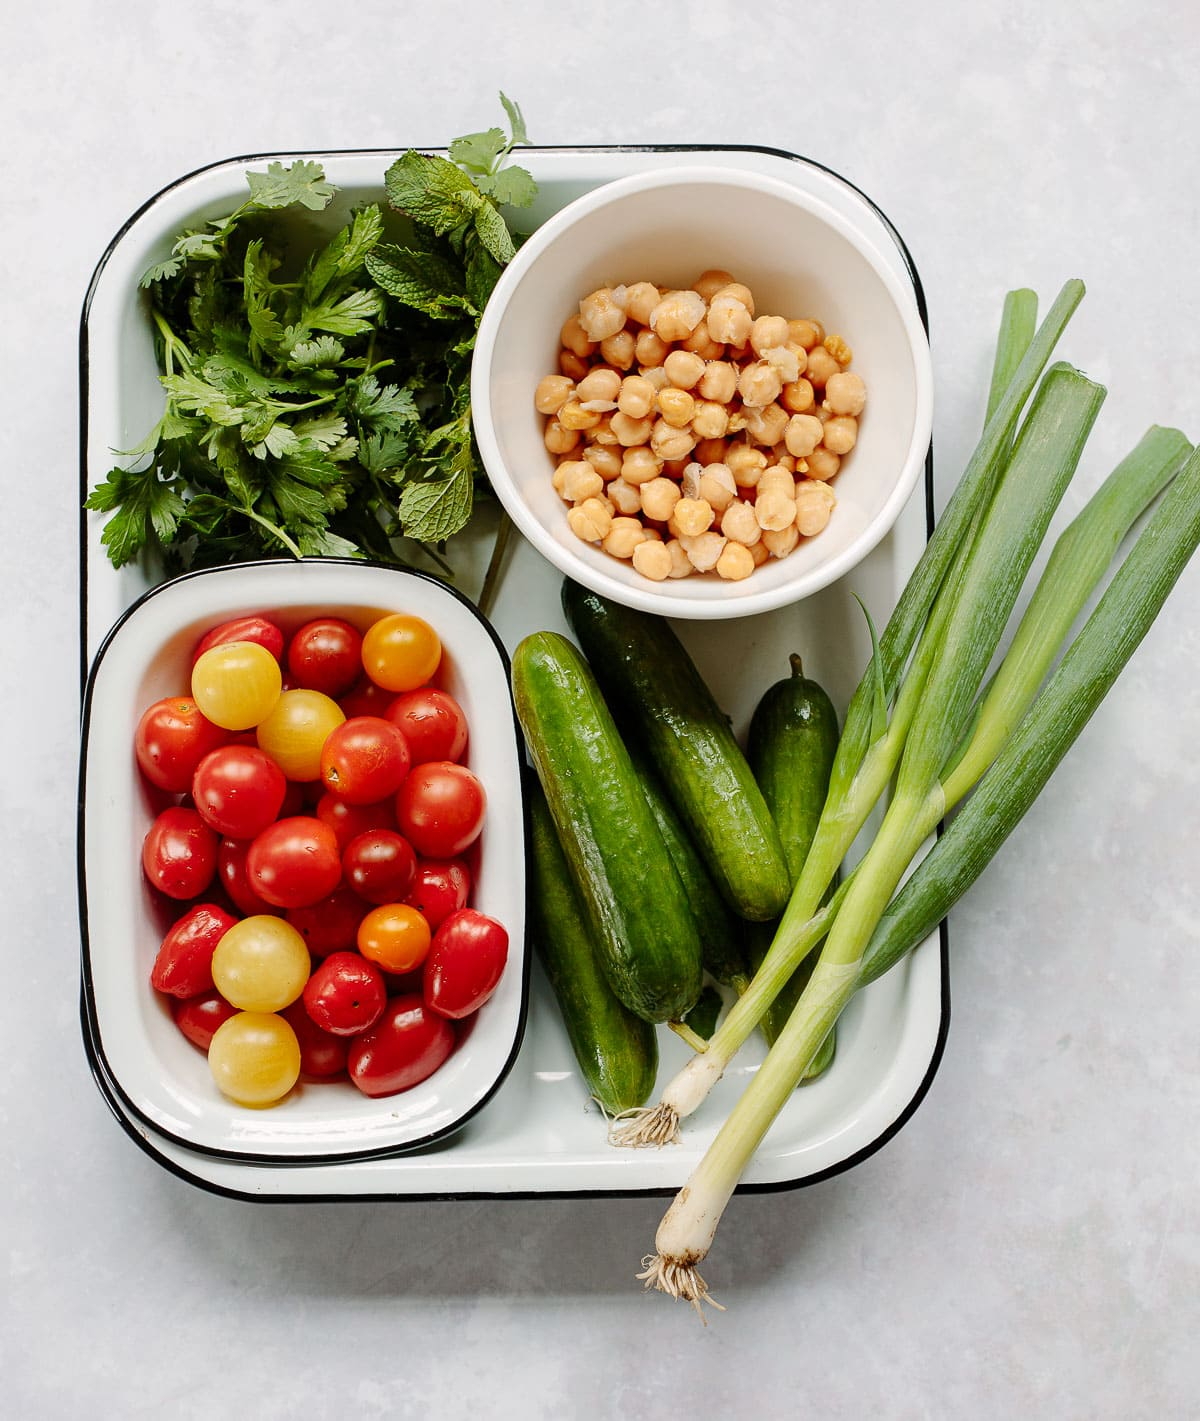 Mediterranean vegetables arranged in a tray for tabbouleh salad, with cherry tomatoes, cucumbers, chickpeas, green onions, cilantro, parsley and mint.